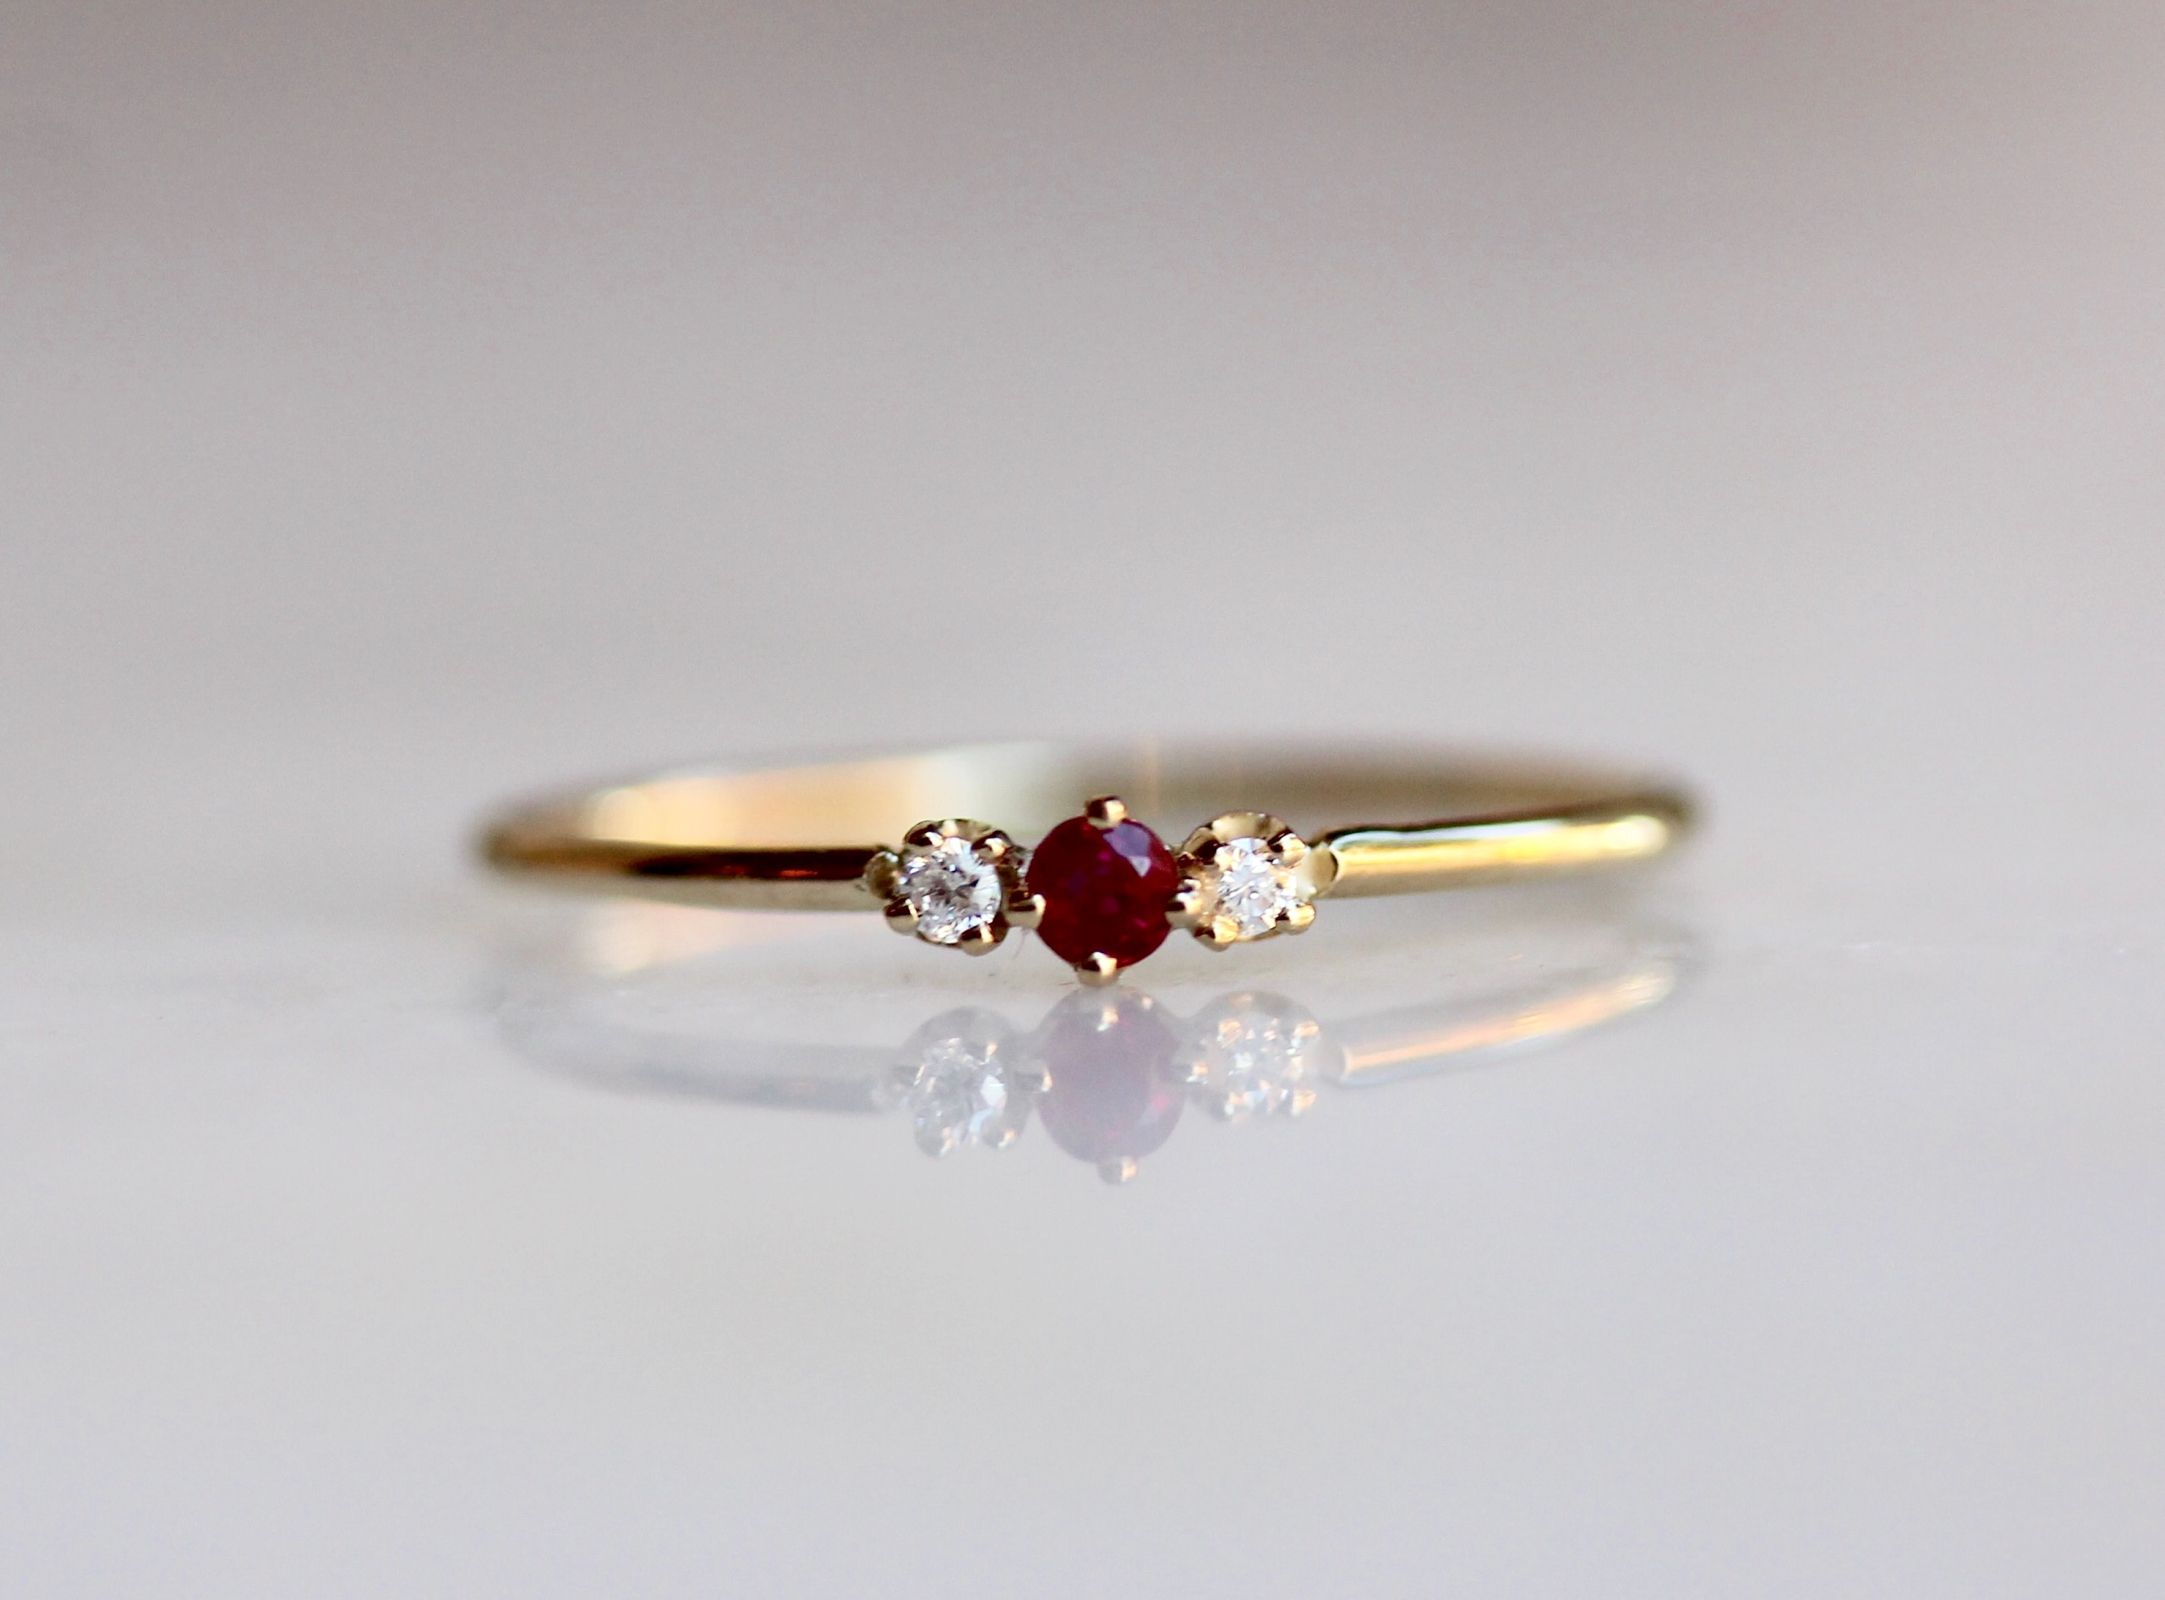 This ring is so sweet This ring gives and hint of red and a hint